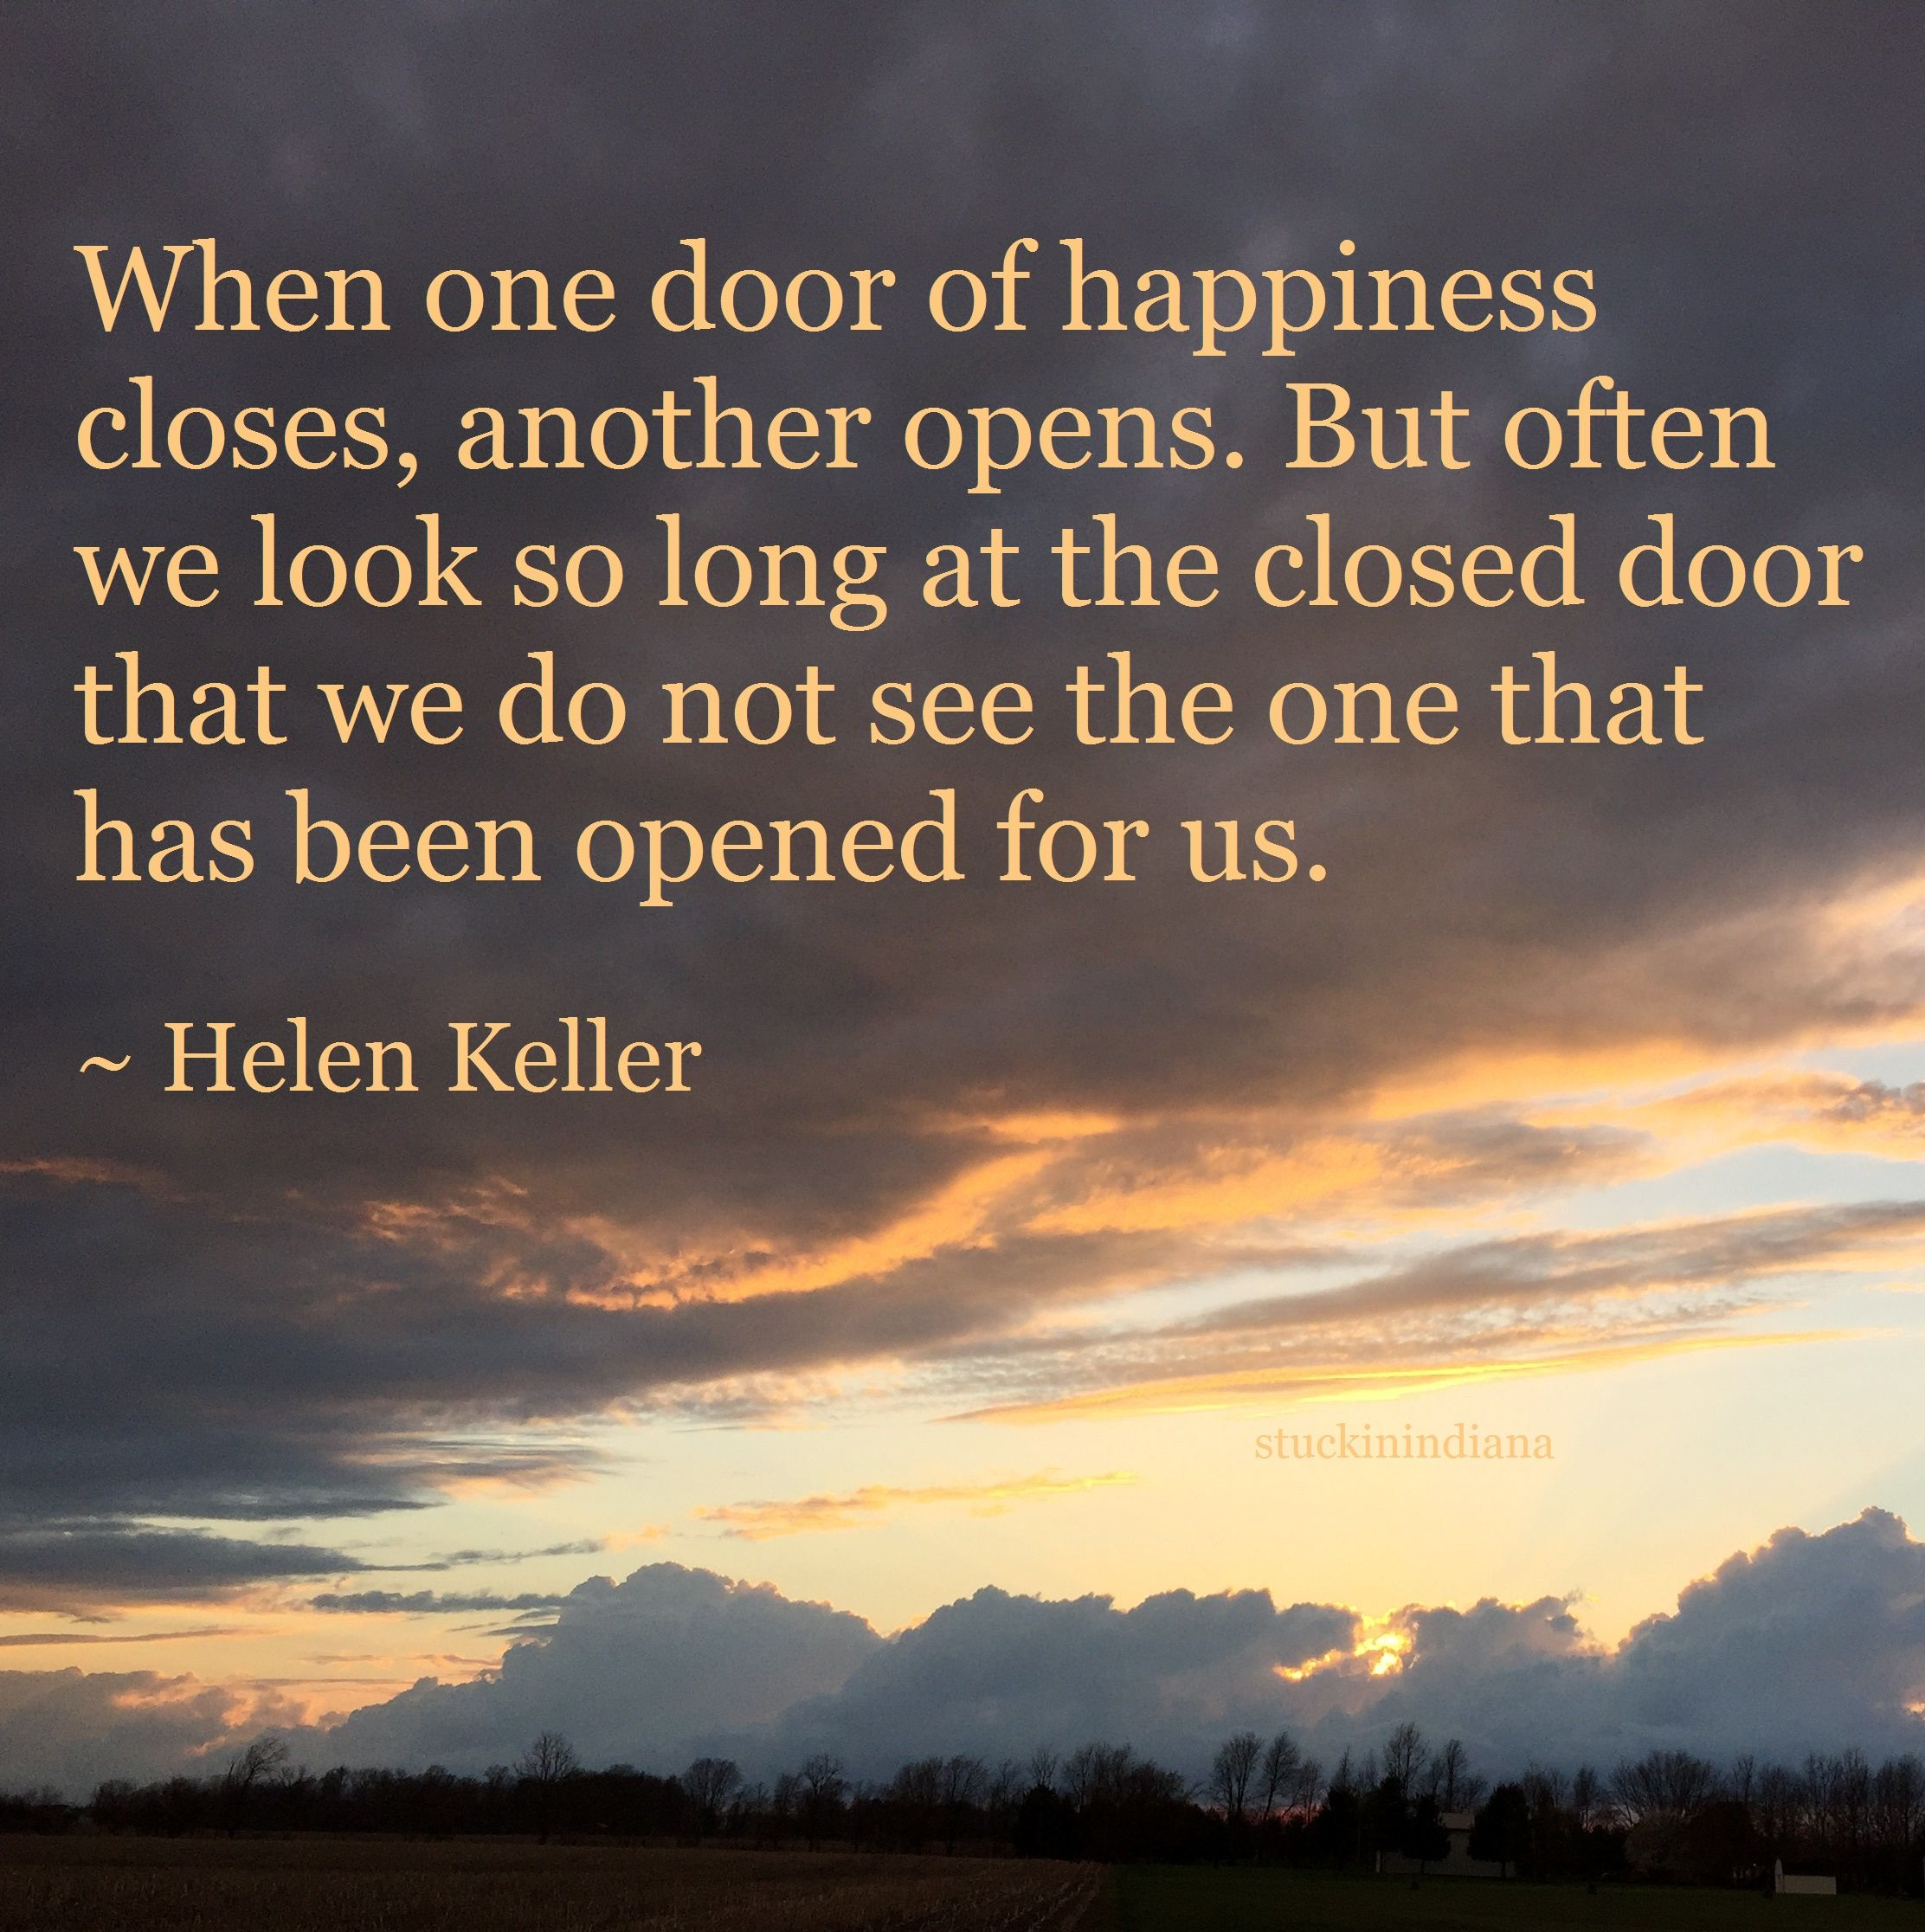 When one door of happiness closes, another opens. But often ...